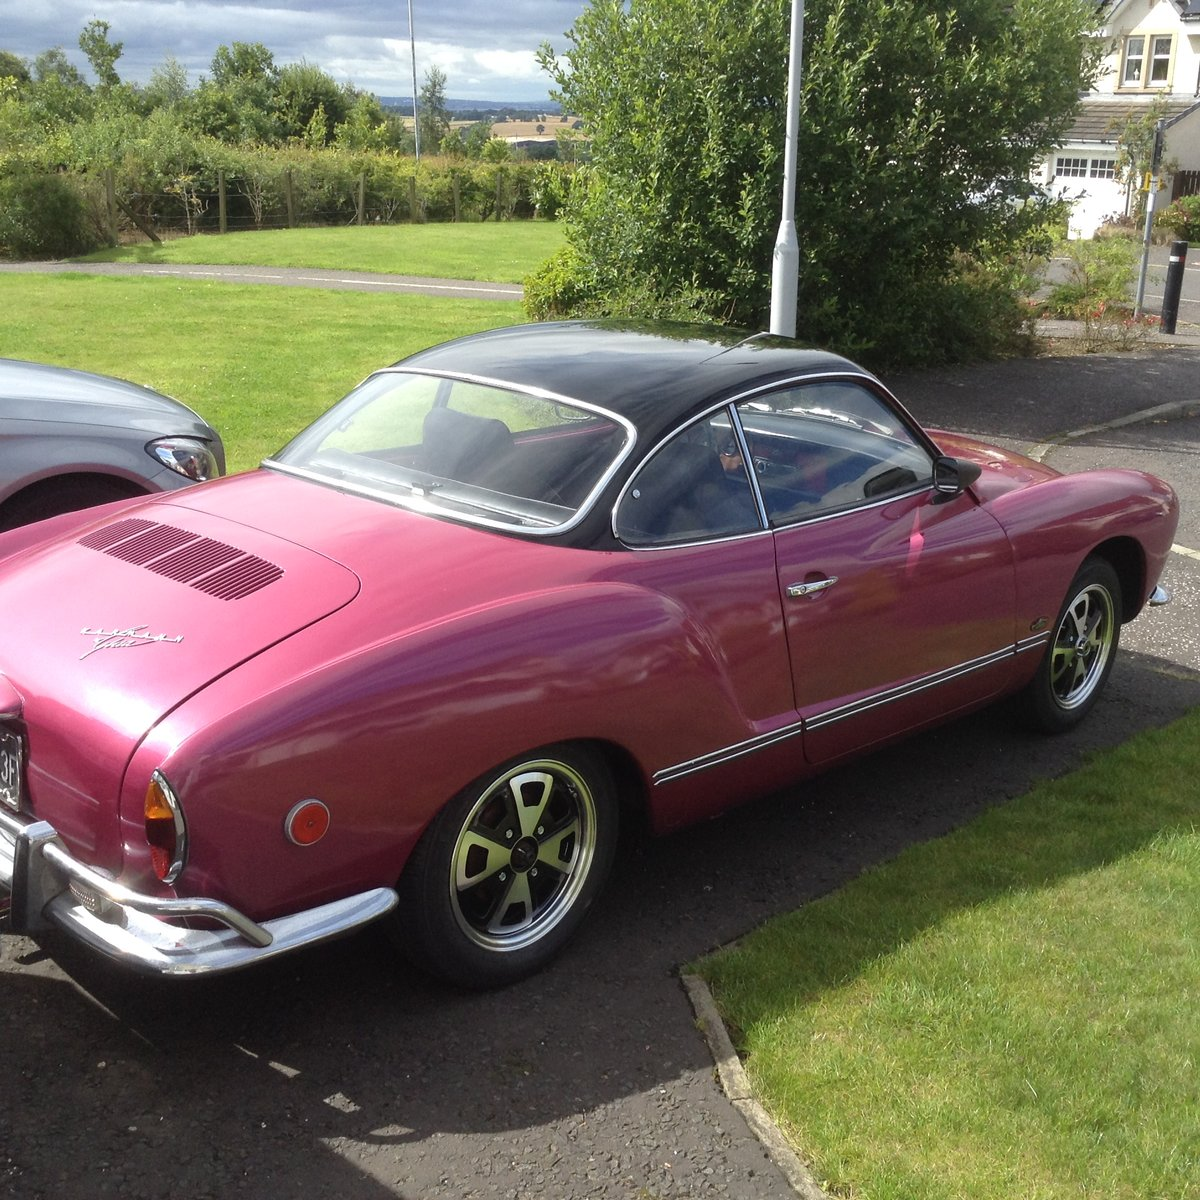 1968 Karmann Ghia, Rot free, semi auto 1500 US import For Sale (picture 1 of 6)